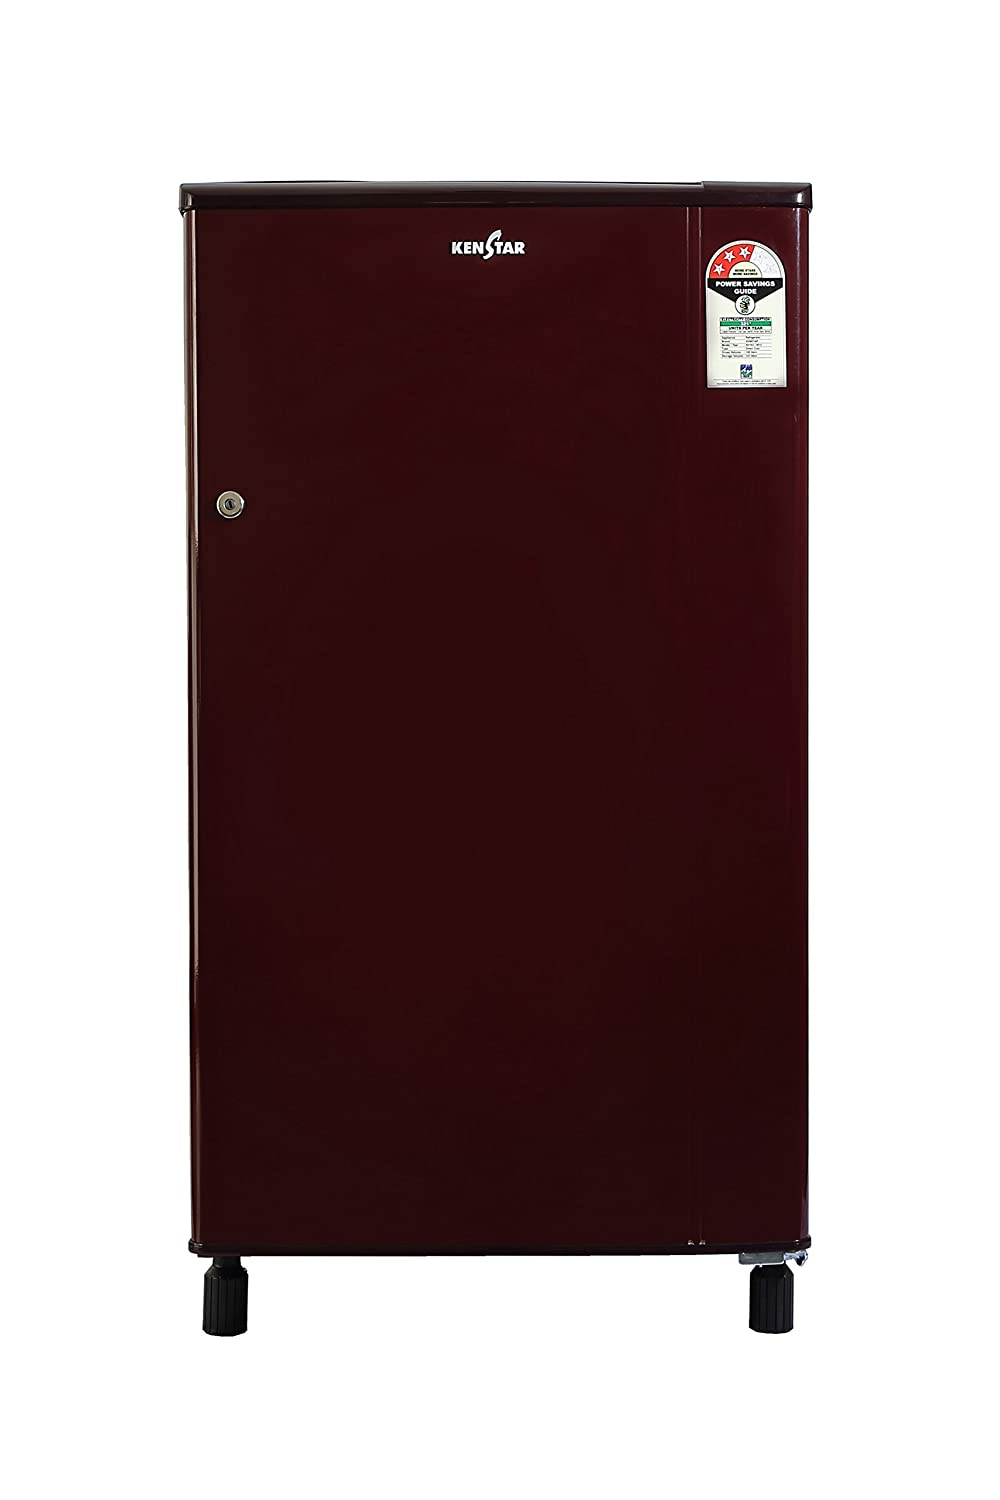 Kenstar NH163BBR-FDA Direct-cool Single-door Refrigerator (150 Ltrs, 3 Star Rating, Burgundy Red) By Amazon @ Rs.6,590